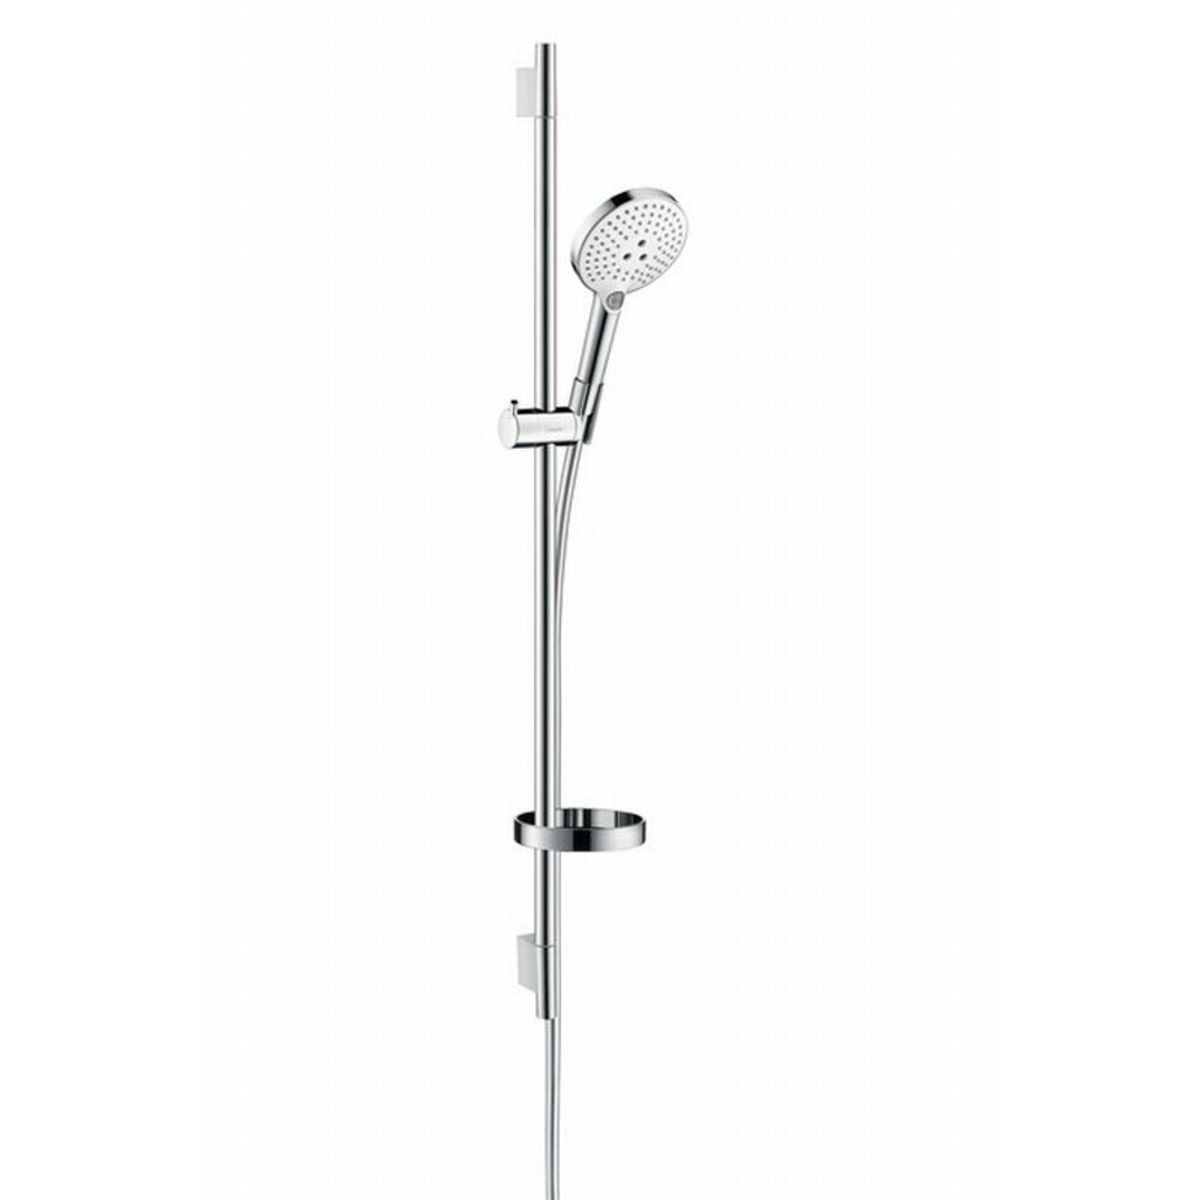 hansgrohe raindance select glijstangset 90cm m ecostat s120 unica s puro wit chroom 26633400. Black Bedroom Furniture Sets. Home Design Ideas